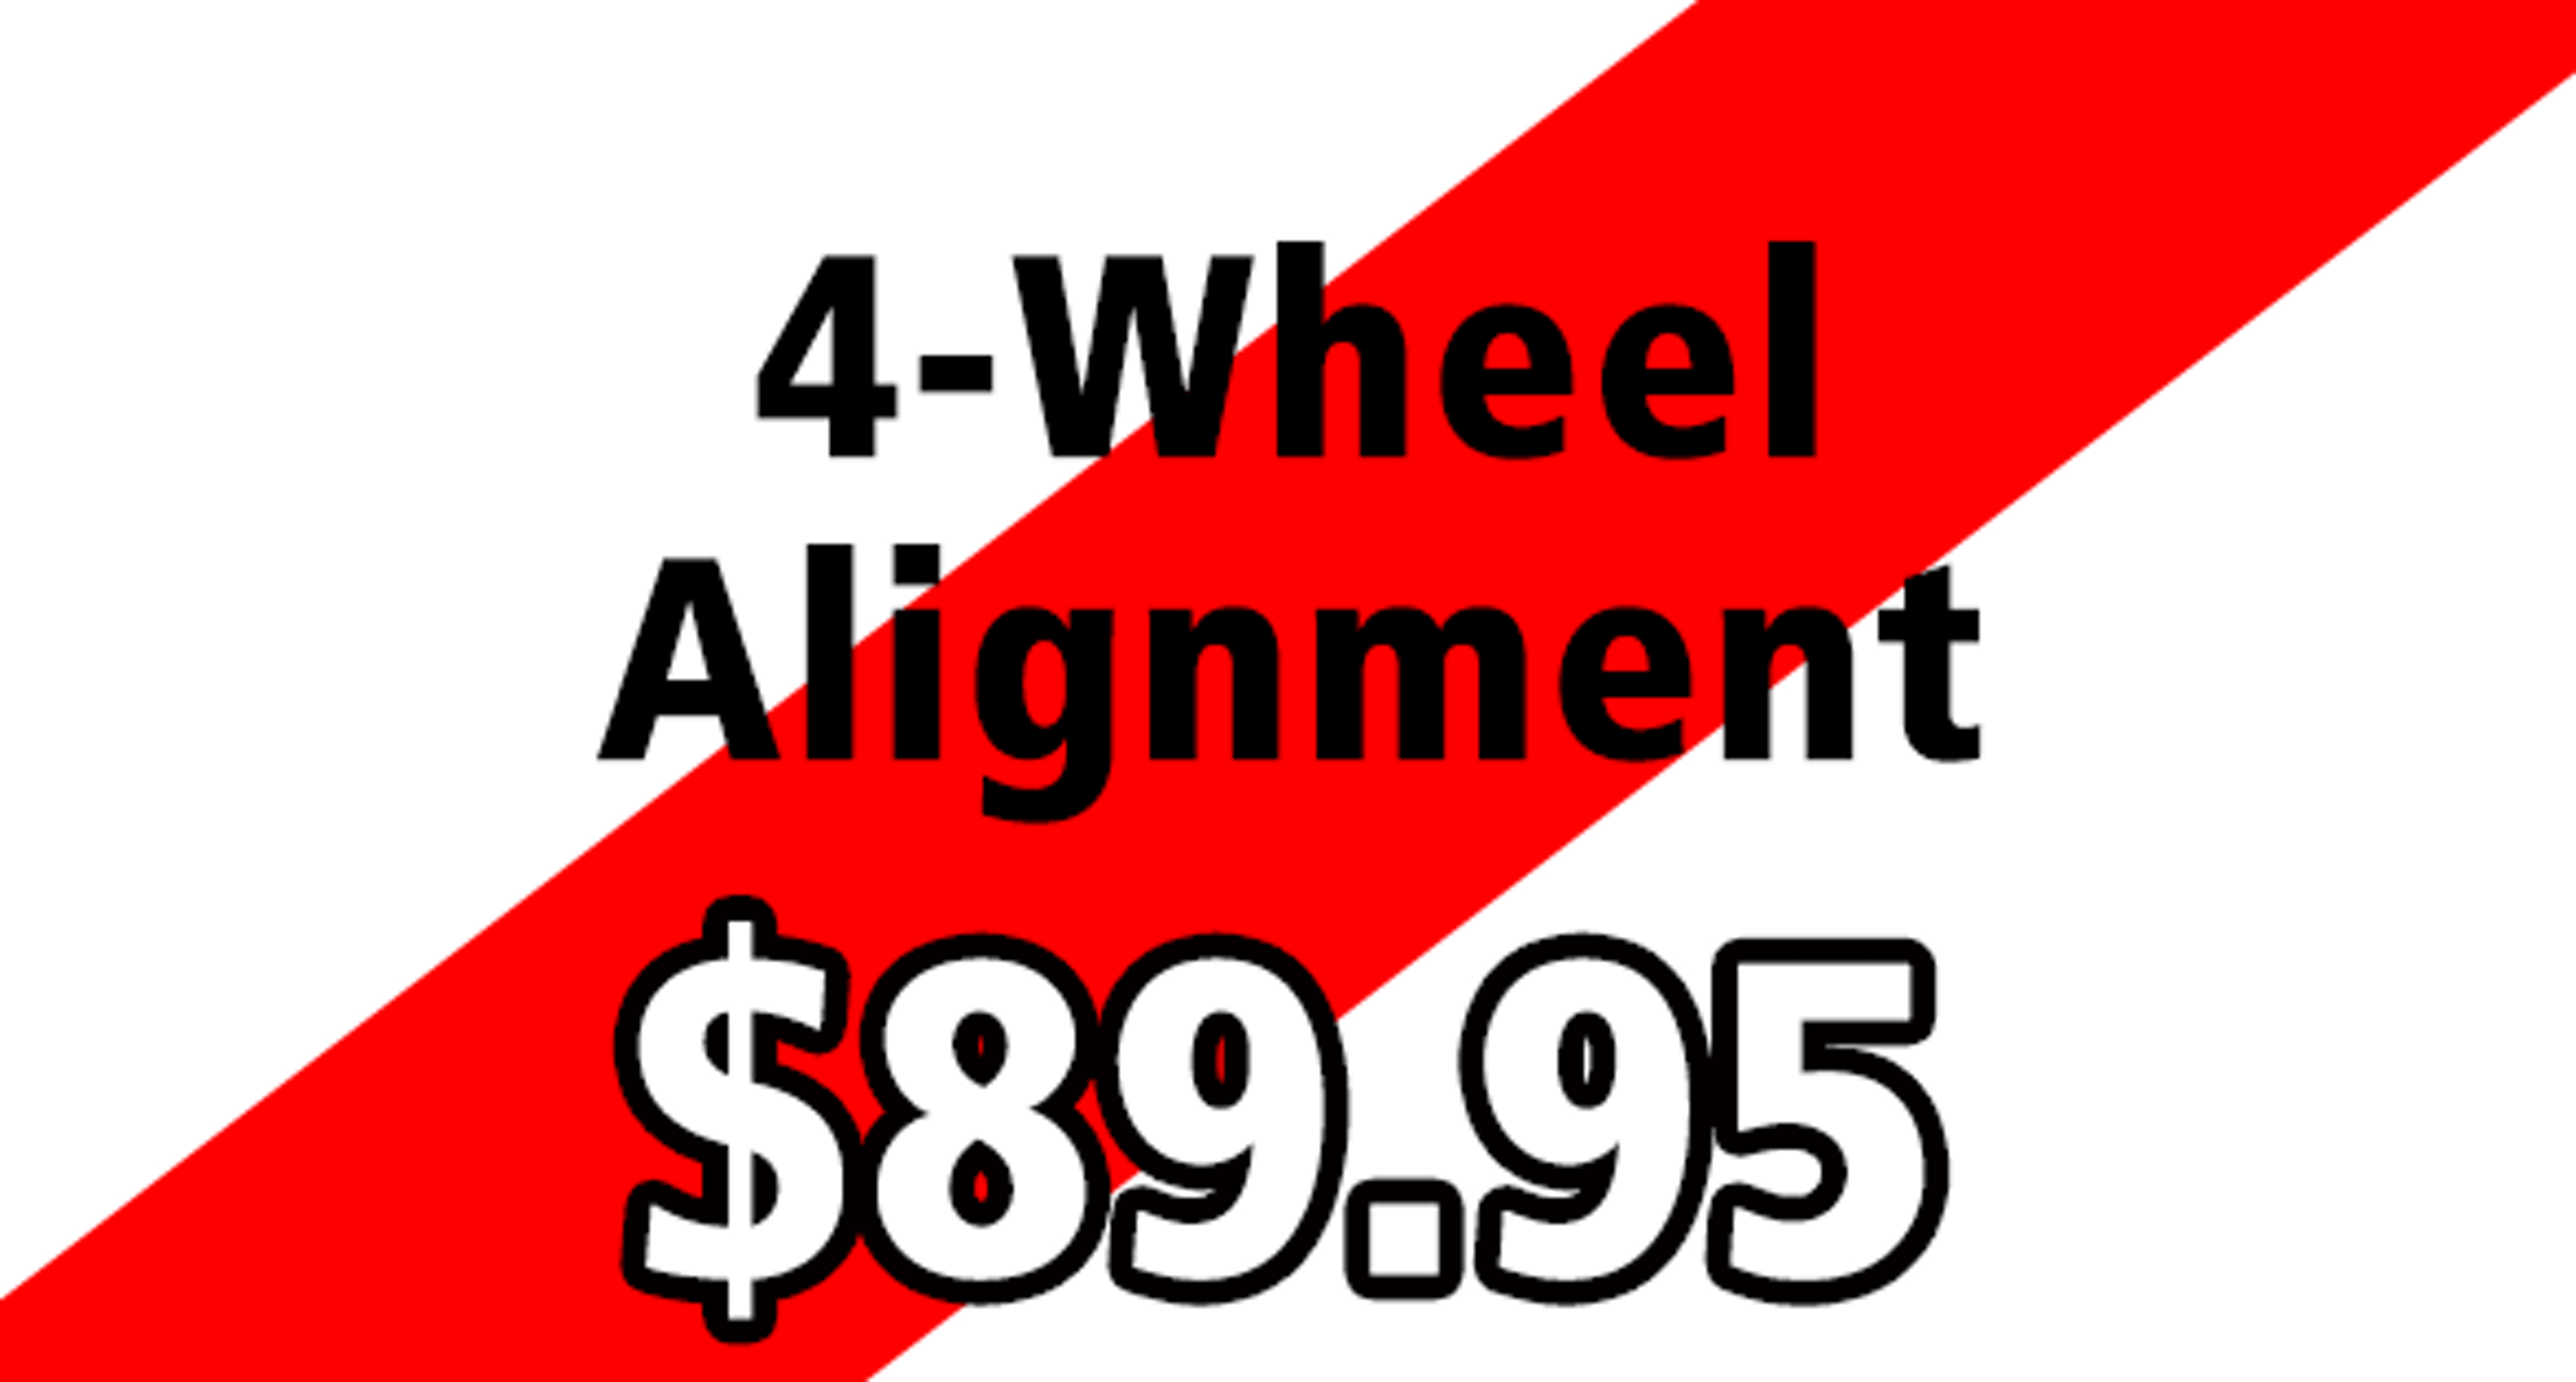 4-WHEEL ALIGNMENT: $89.95 Service specials Diehl Automotive Pennsylvania Ohio Pittsburgh Butler Moon Robinson vehicle sales service parts accessories Chrysler jeep dodge ram chevrolet buick cadillac toyota volkswagen vw mitsubishi